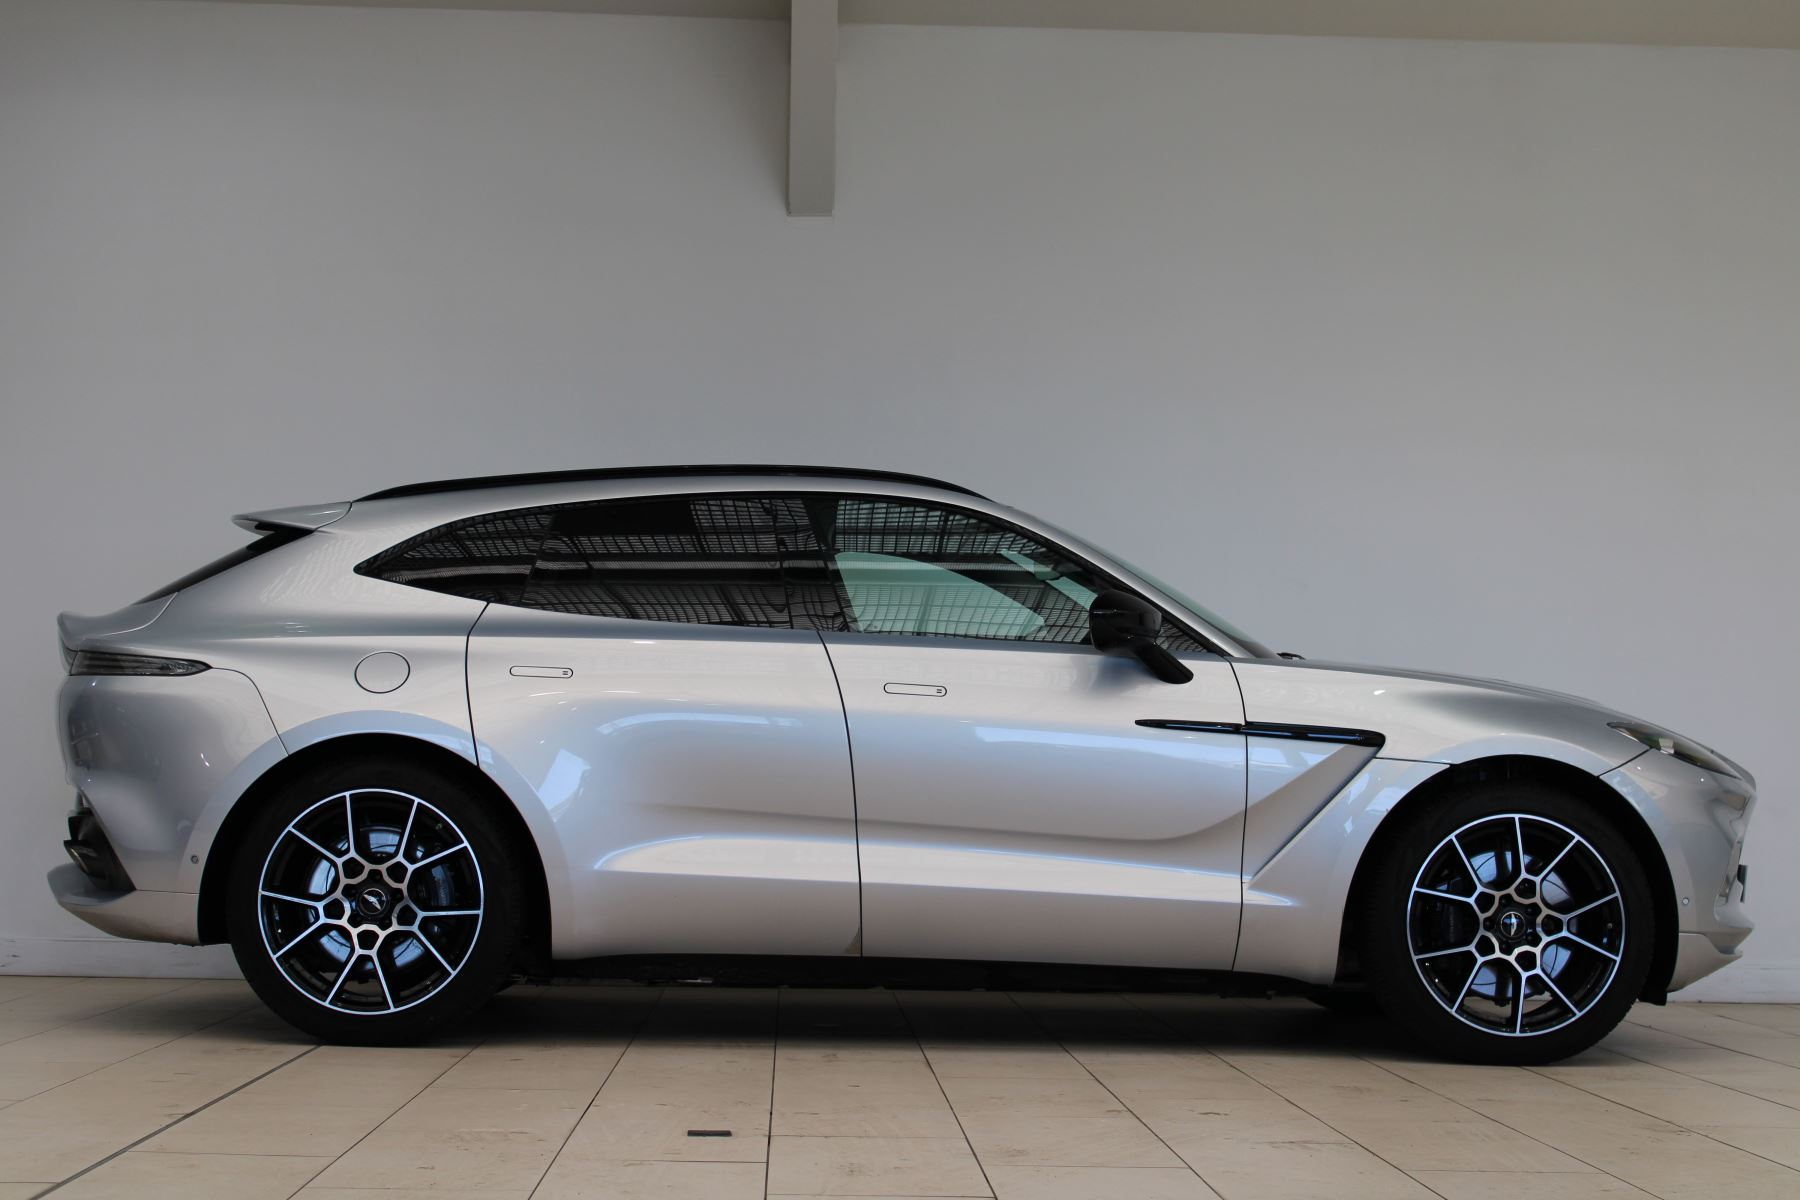 Aston Martin DBX V8 550 Touchtronic image 19